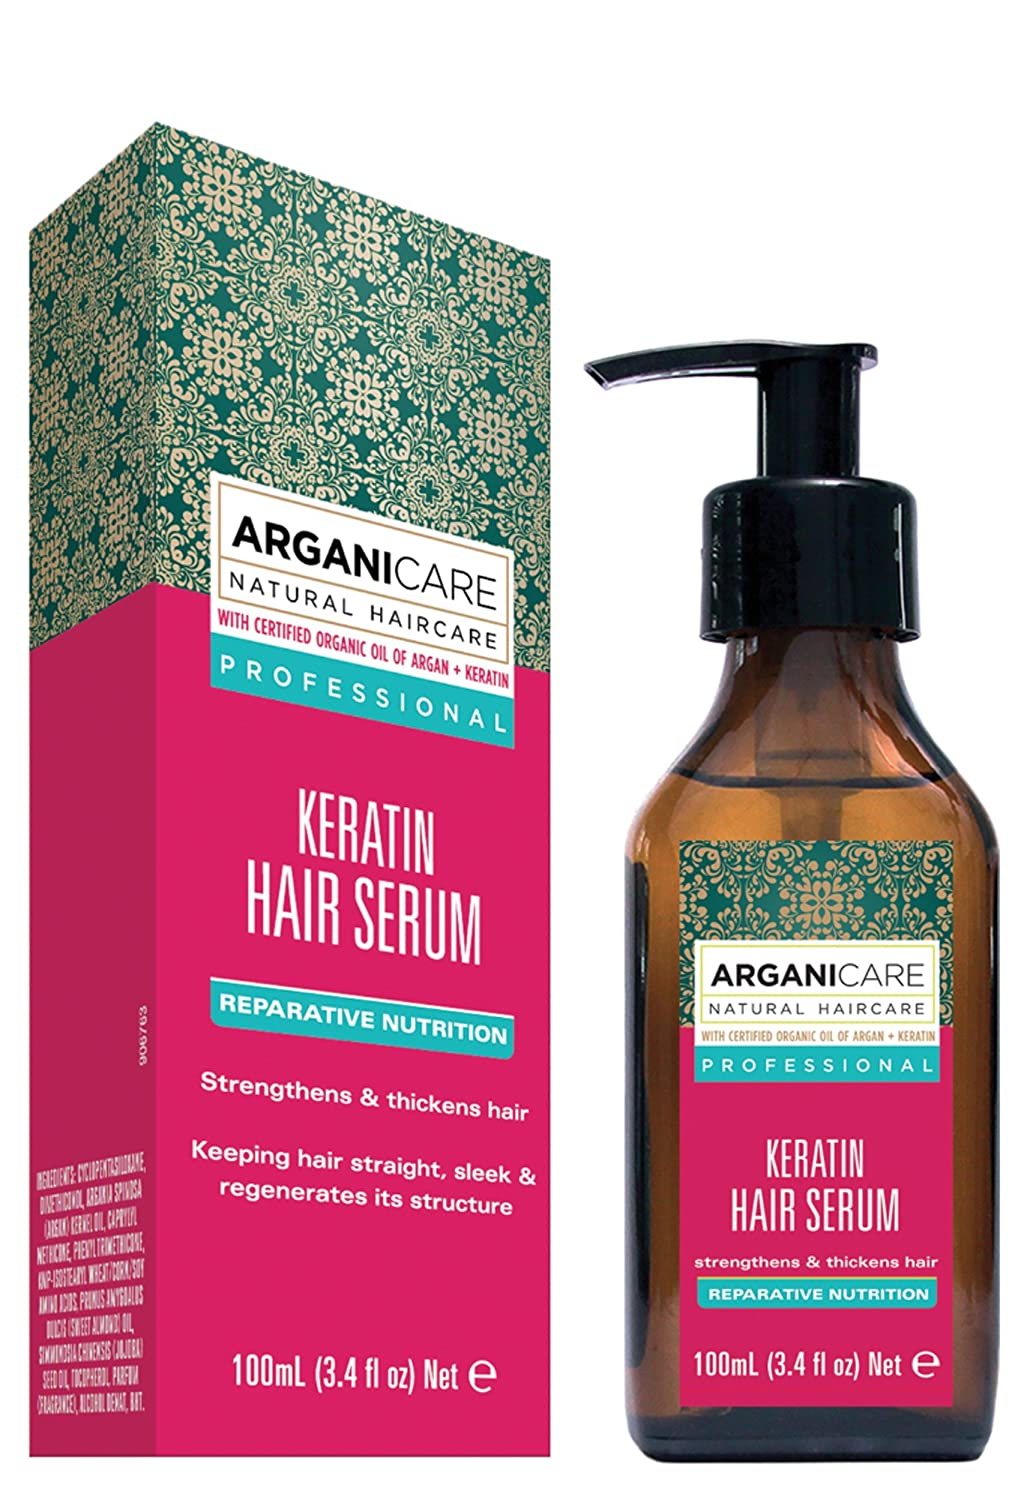 Arganicare Keratin Repairing Hair Serum with Certified Organic Oil of Argan to strengthen and thicken. 100ml AGN023 1160_-100ml